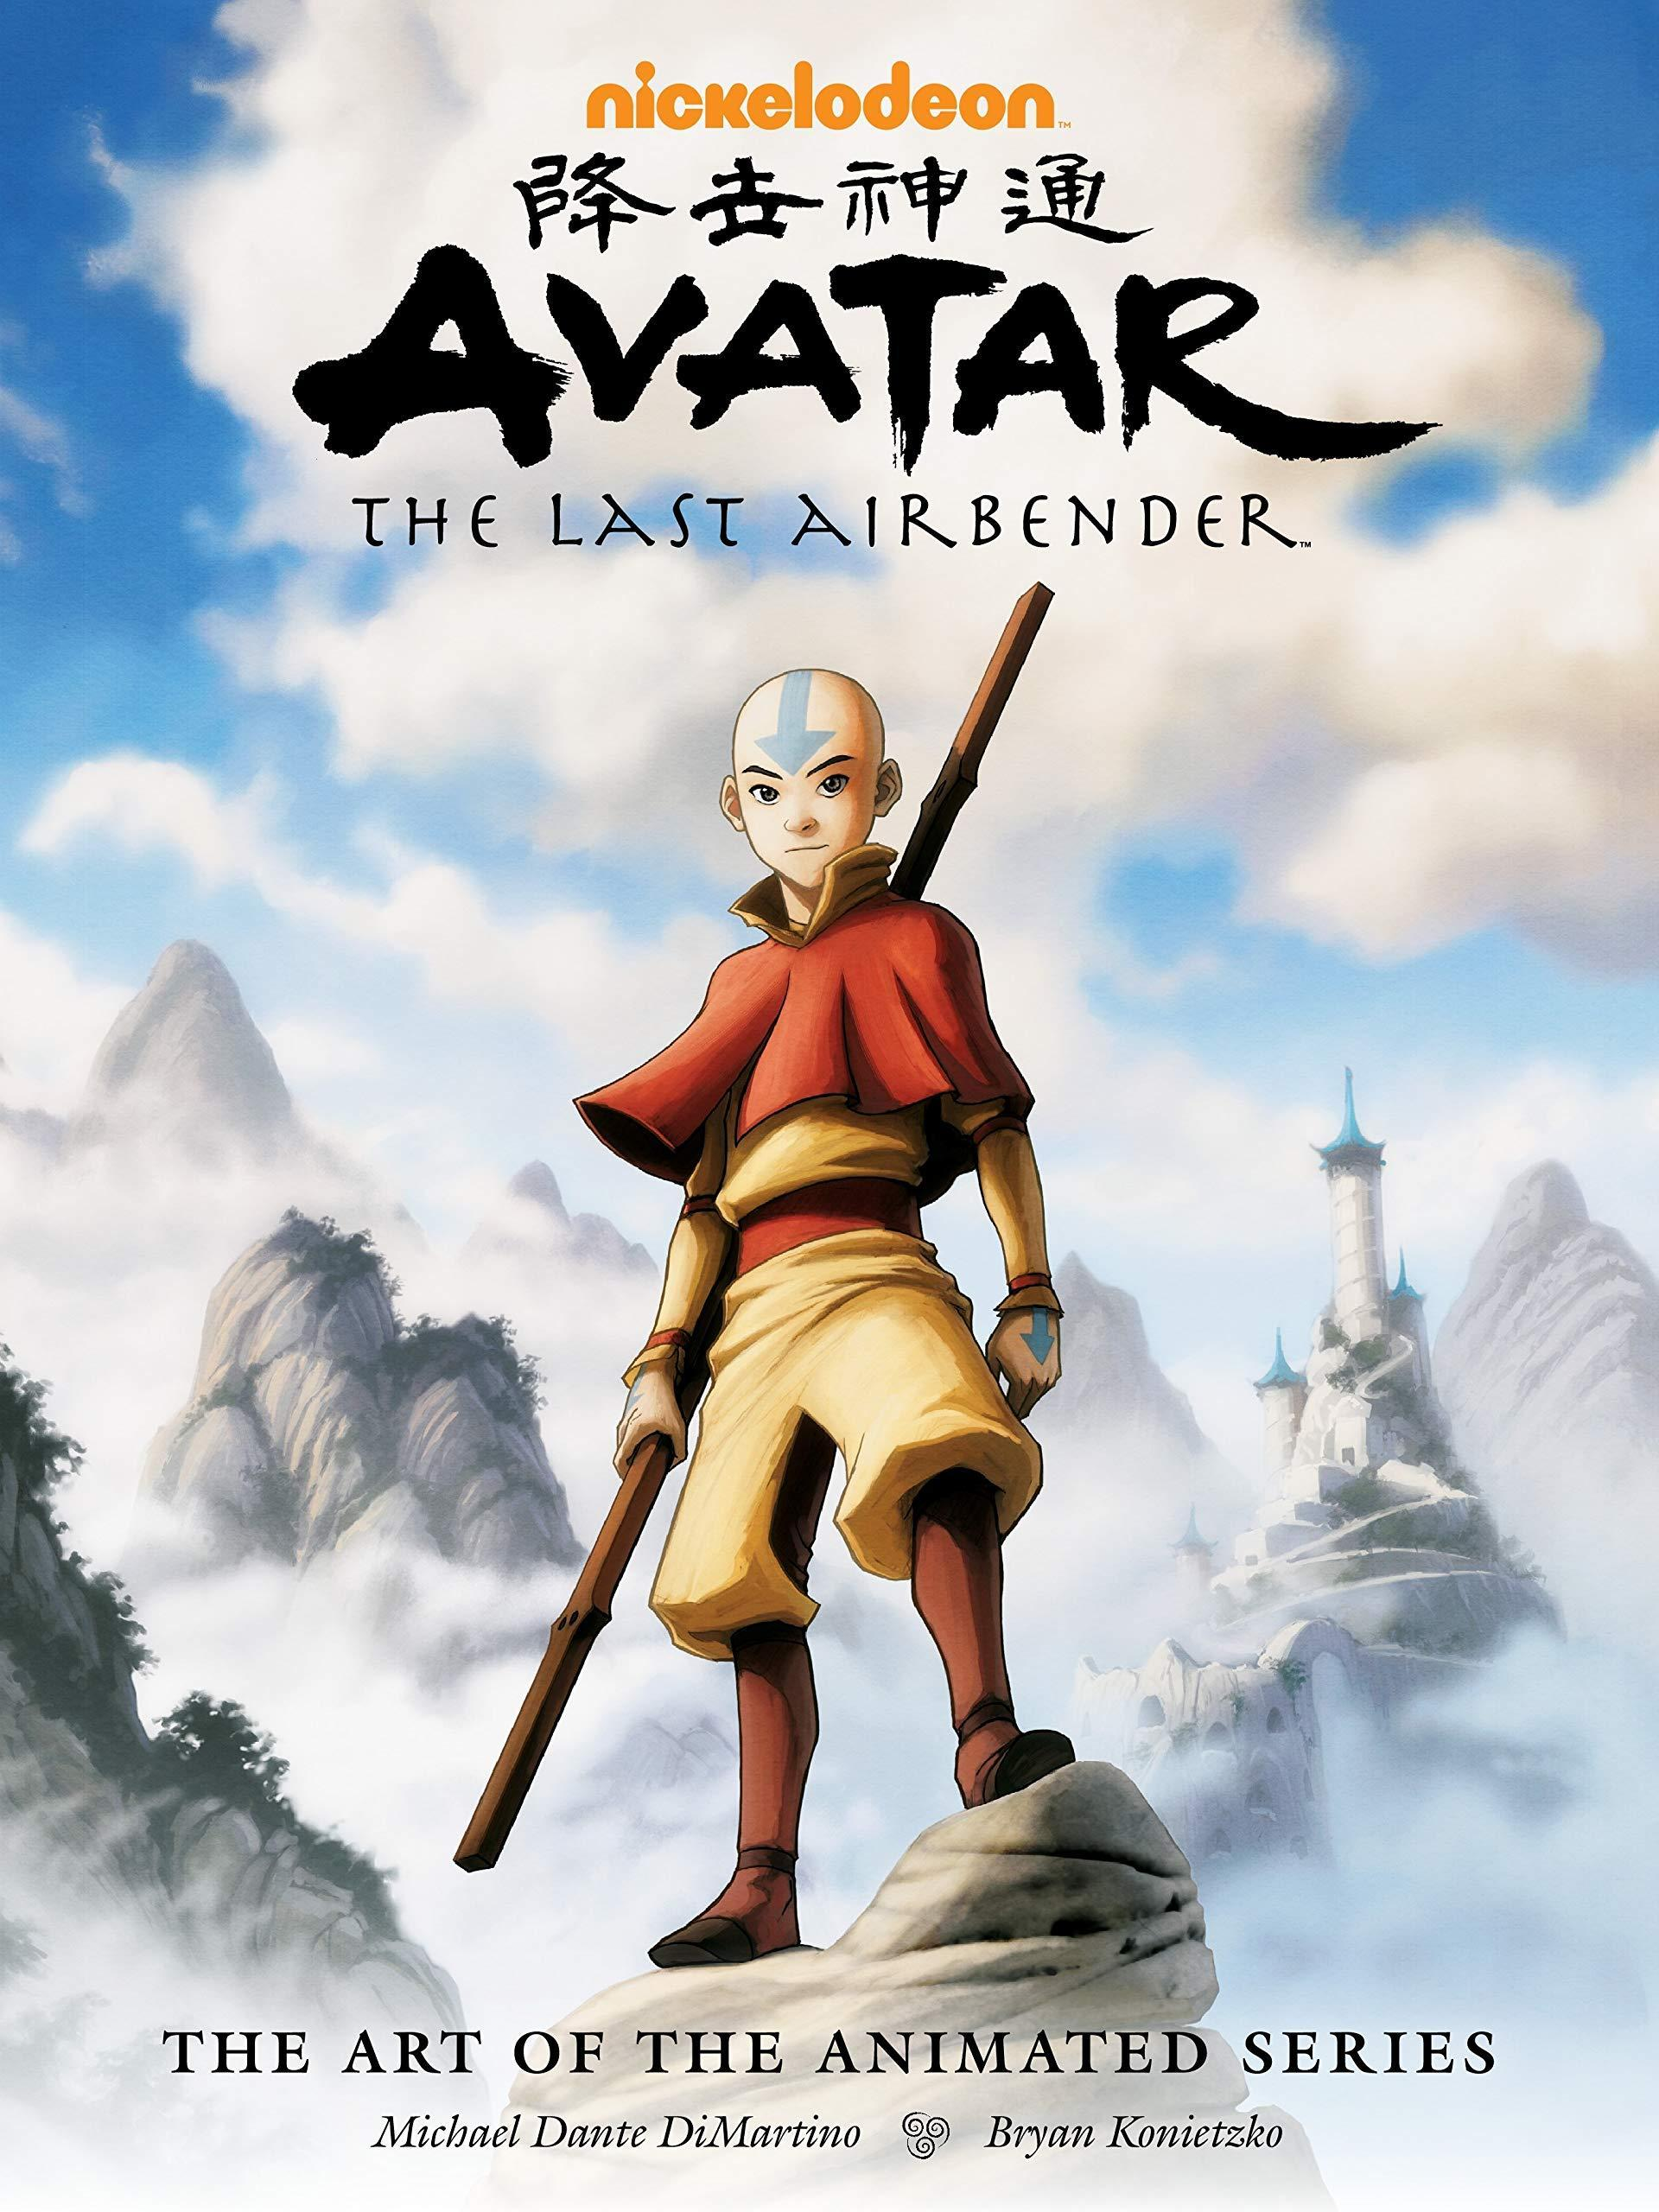 Aang the current Avatar